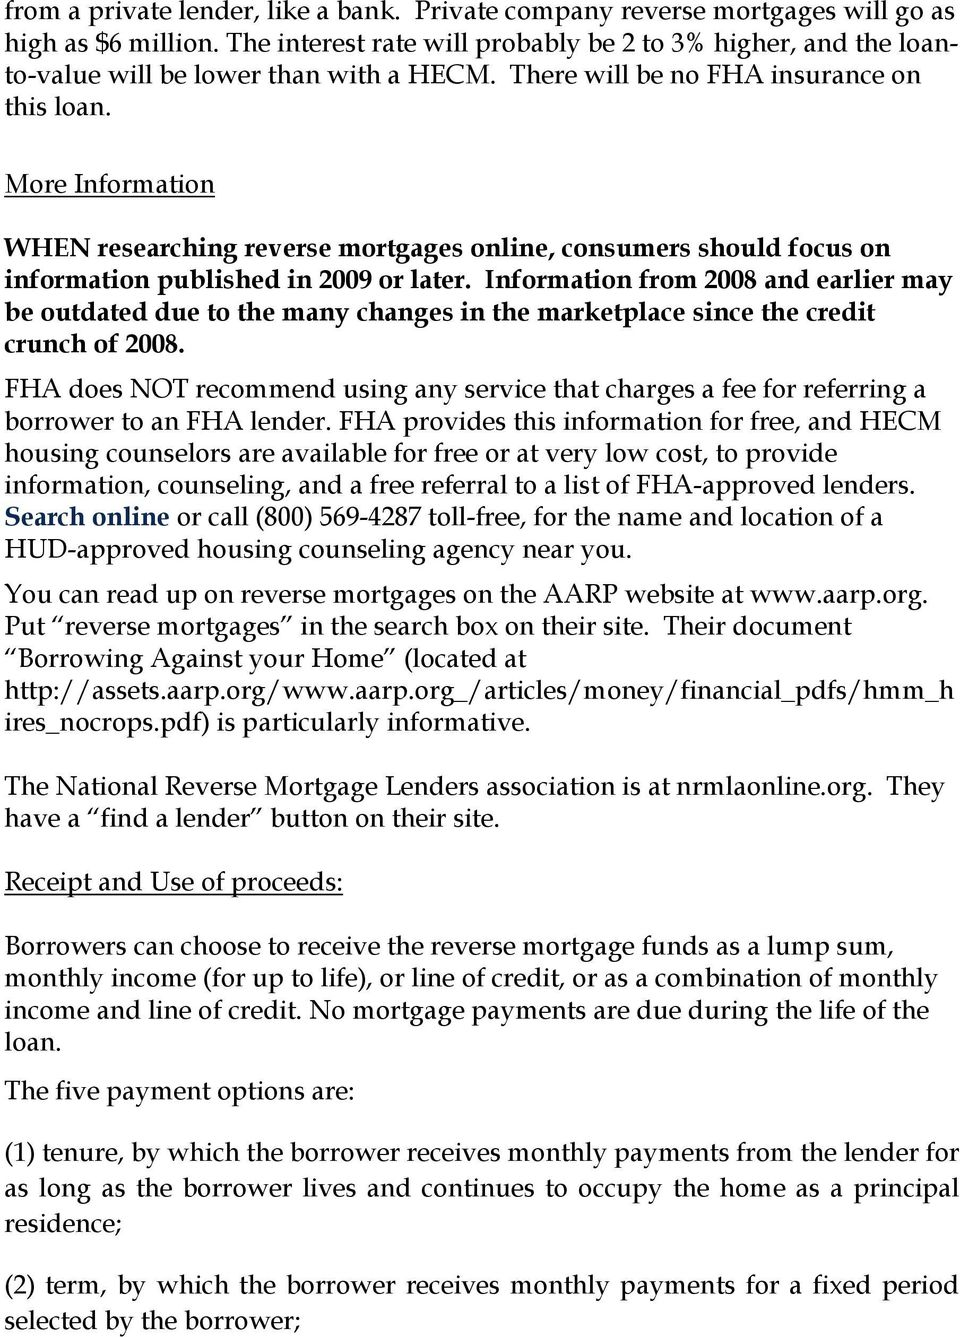 More Information WHEN researching reverse mortgages online, consumers should focus on information published in 2009 or later.